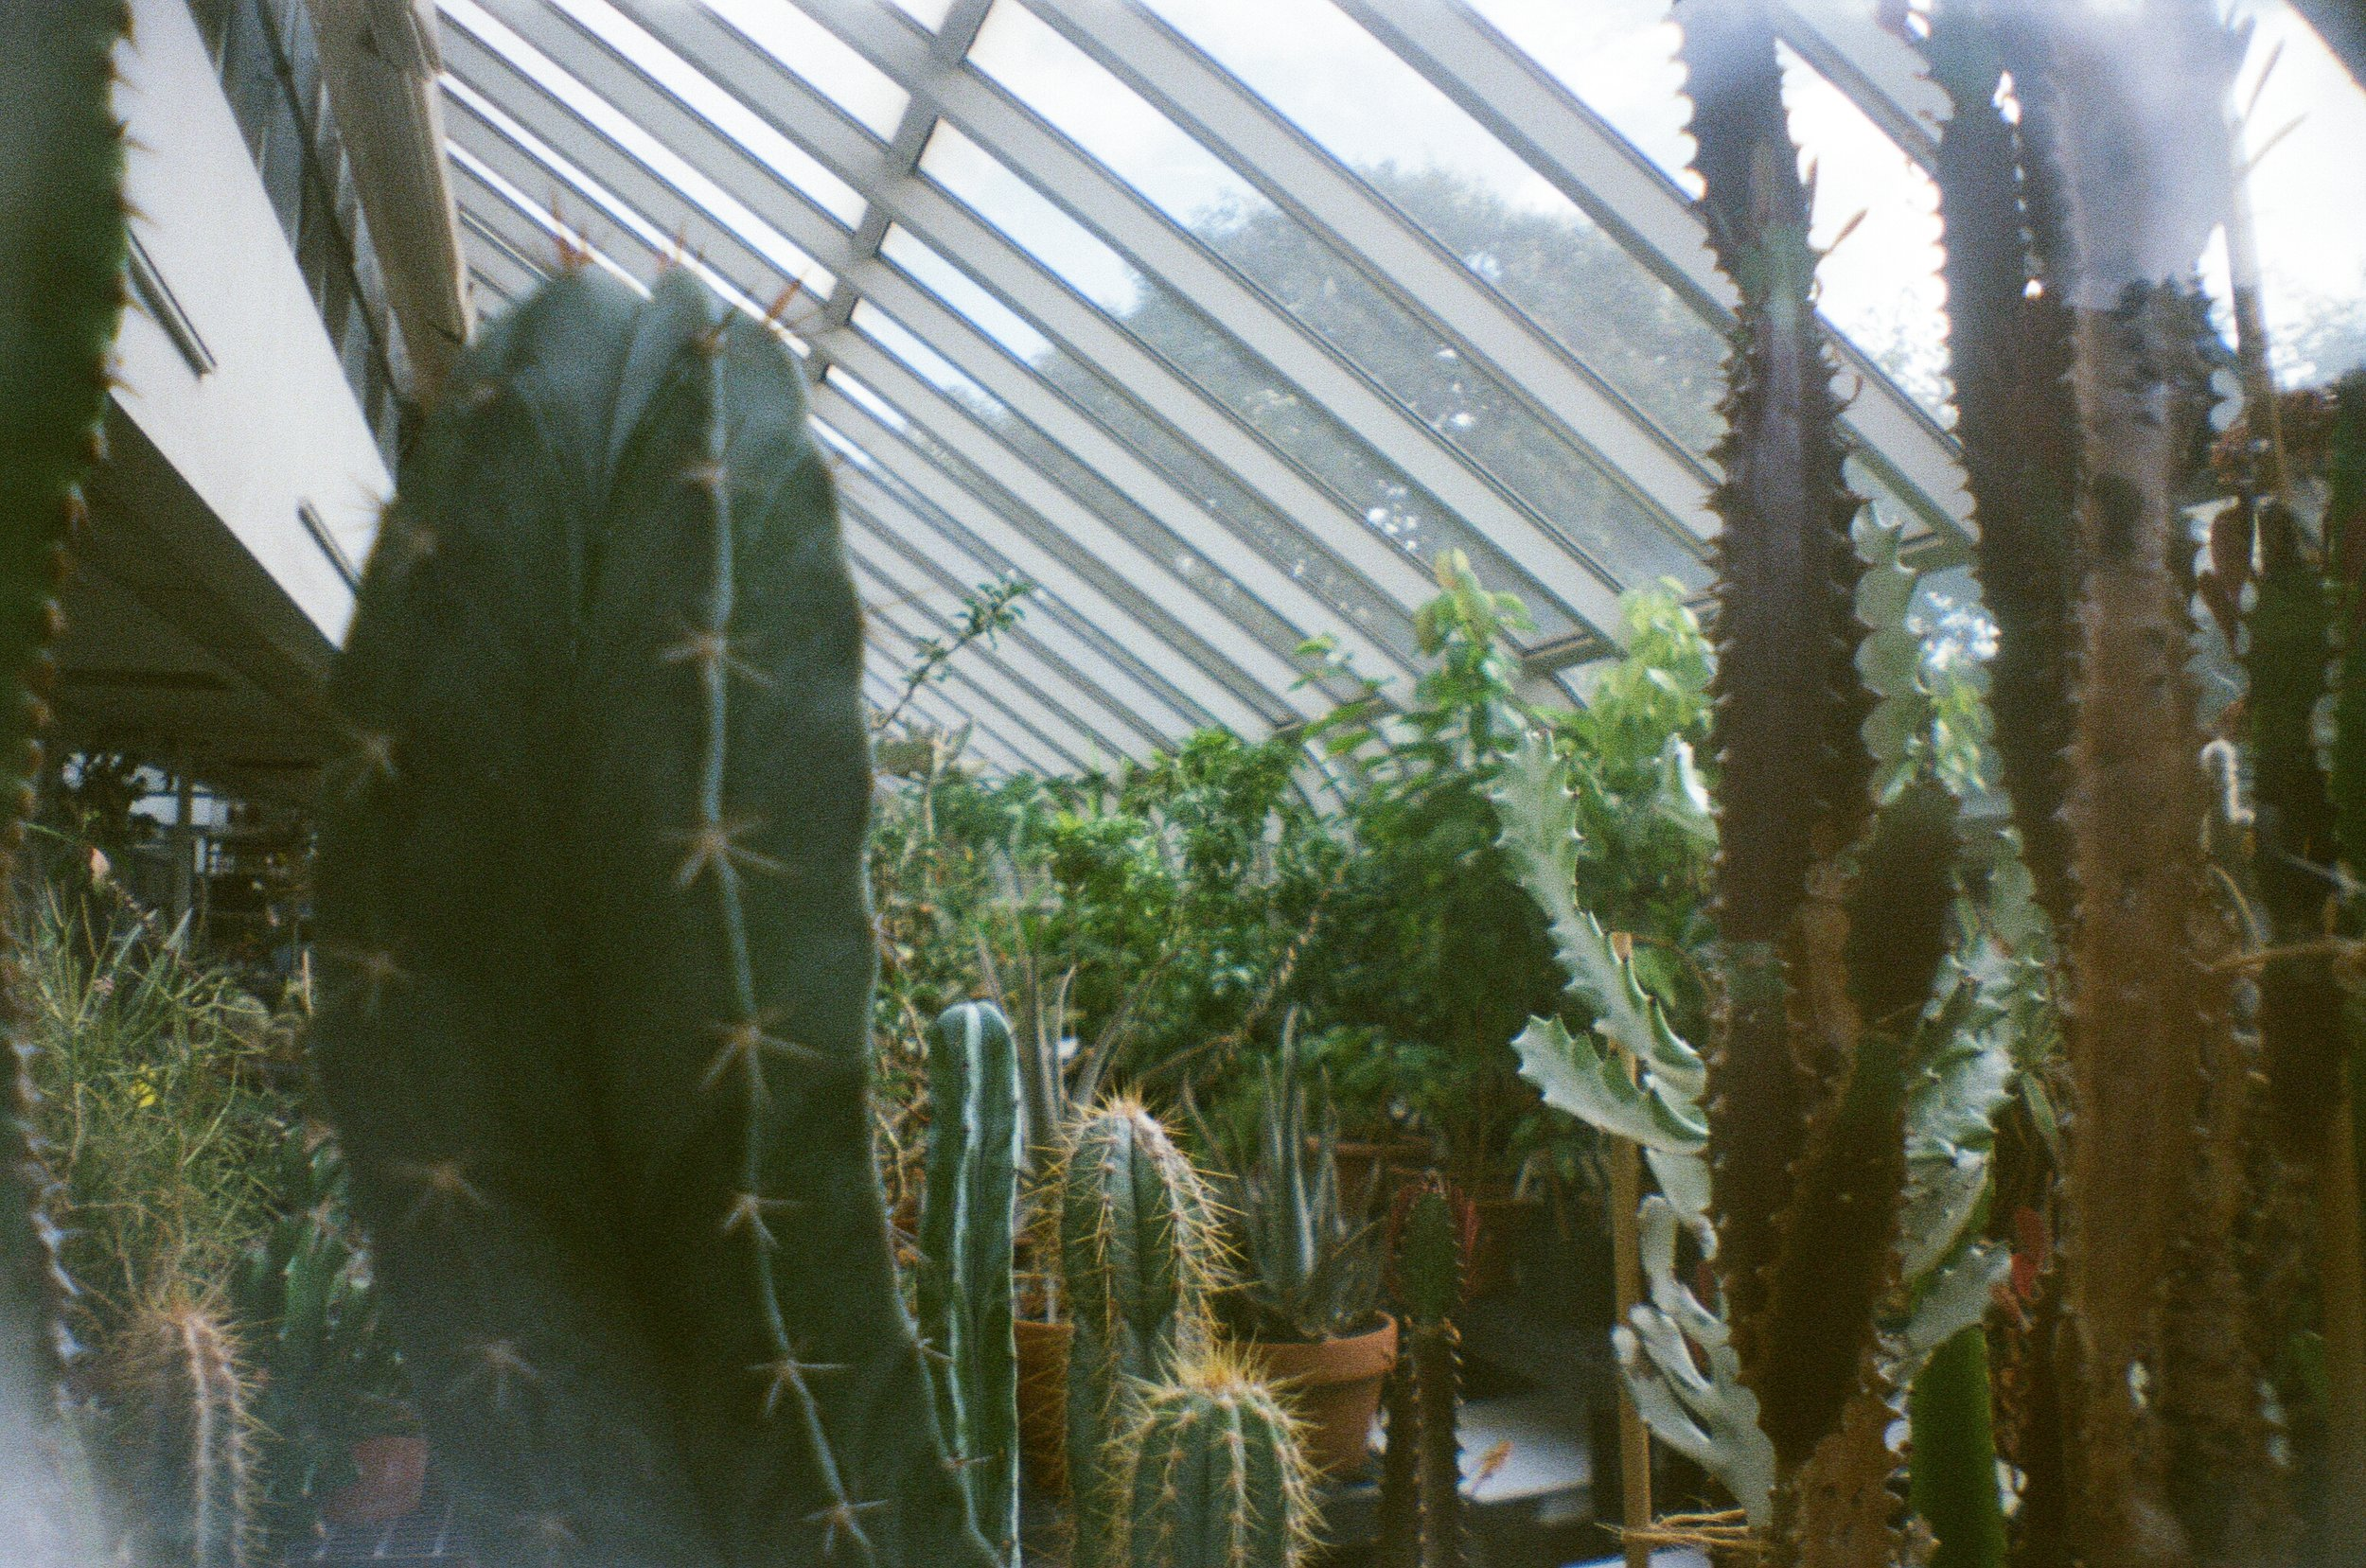 Brooklyn Botanic Garden, NYC, USA. This was taken with film, I was still learning about what the best lighting suited this little toy camera.